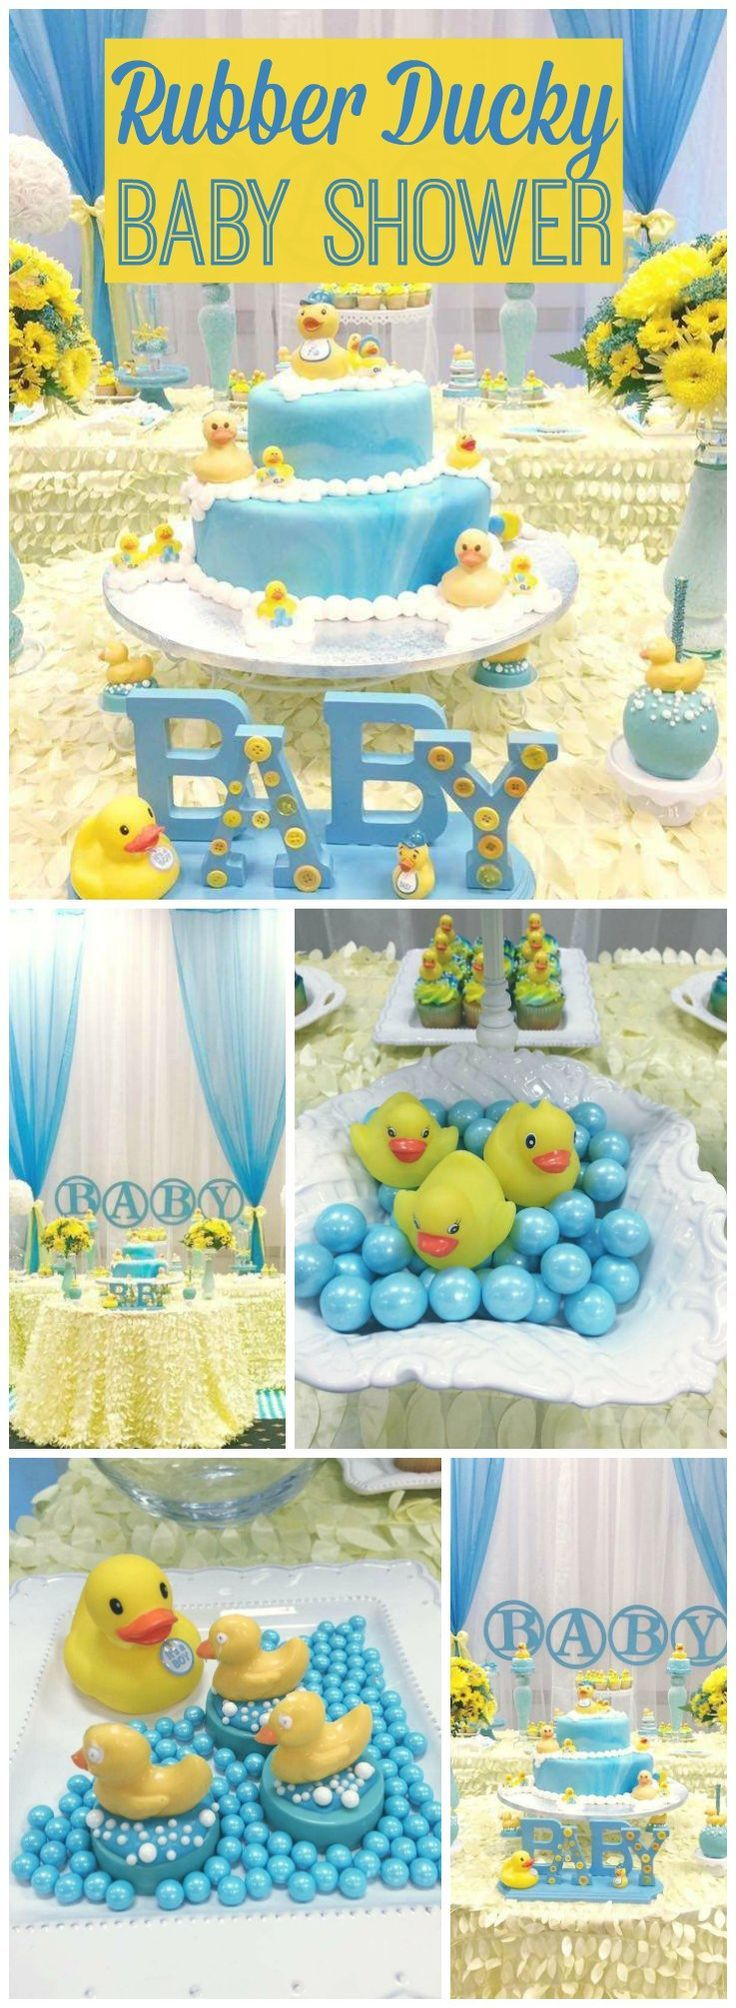 duckies baby shower rubber duckies baby shower rubber ducky b